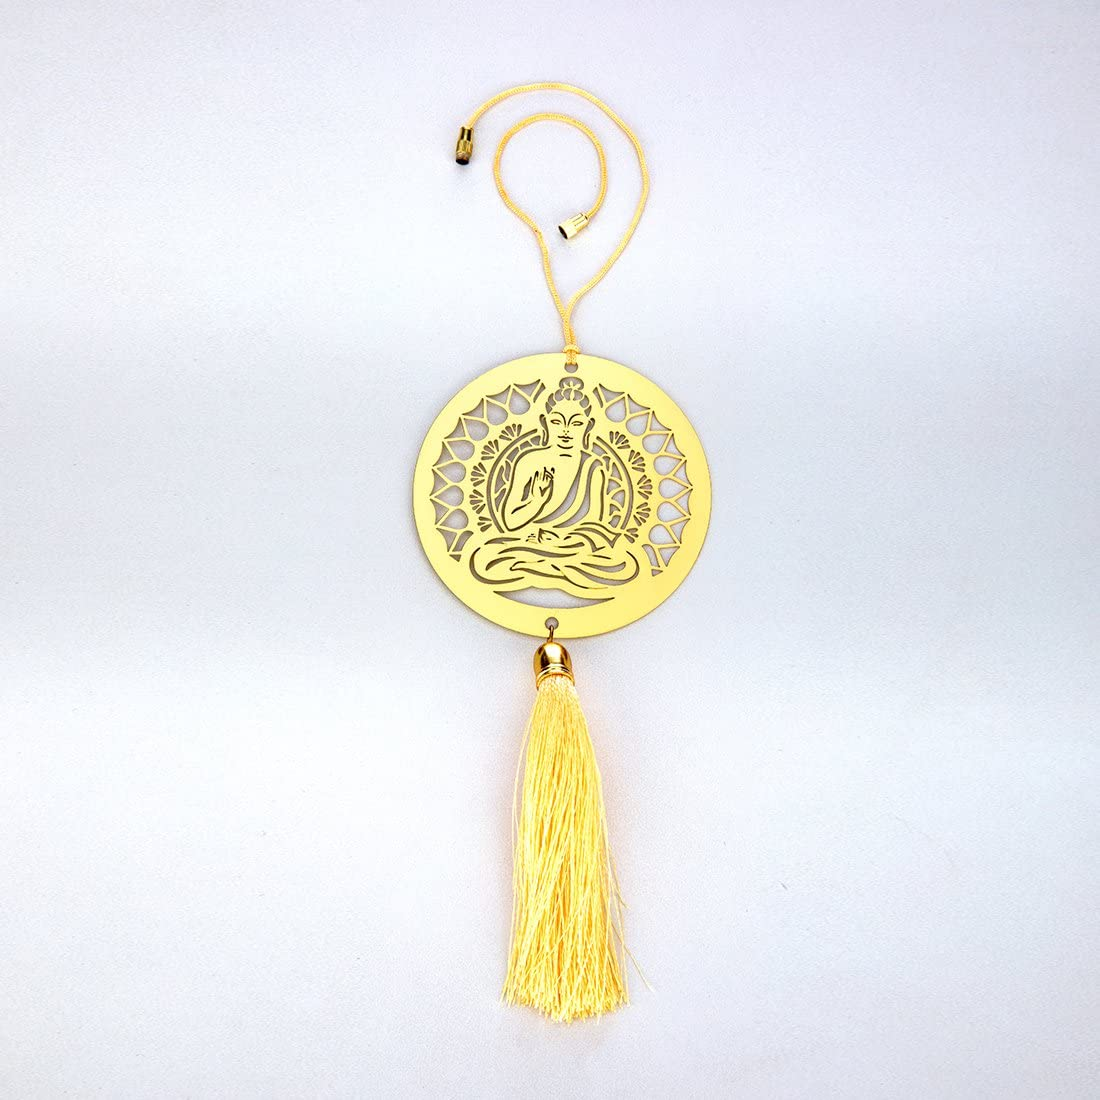 ADORAA Buddha - Rear View Mirror Car Hanging Ornament/Perfect Car Charm Pendant/Amulet - Accessories for Car Décor in Brass for Divine Blessings & Safety/Protection